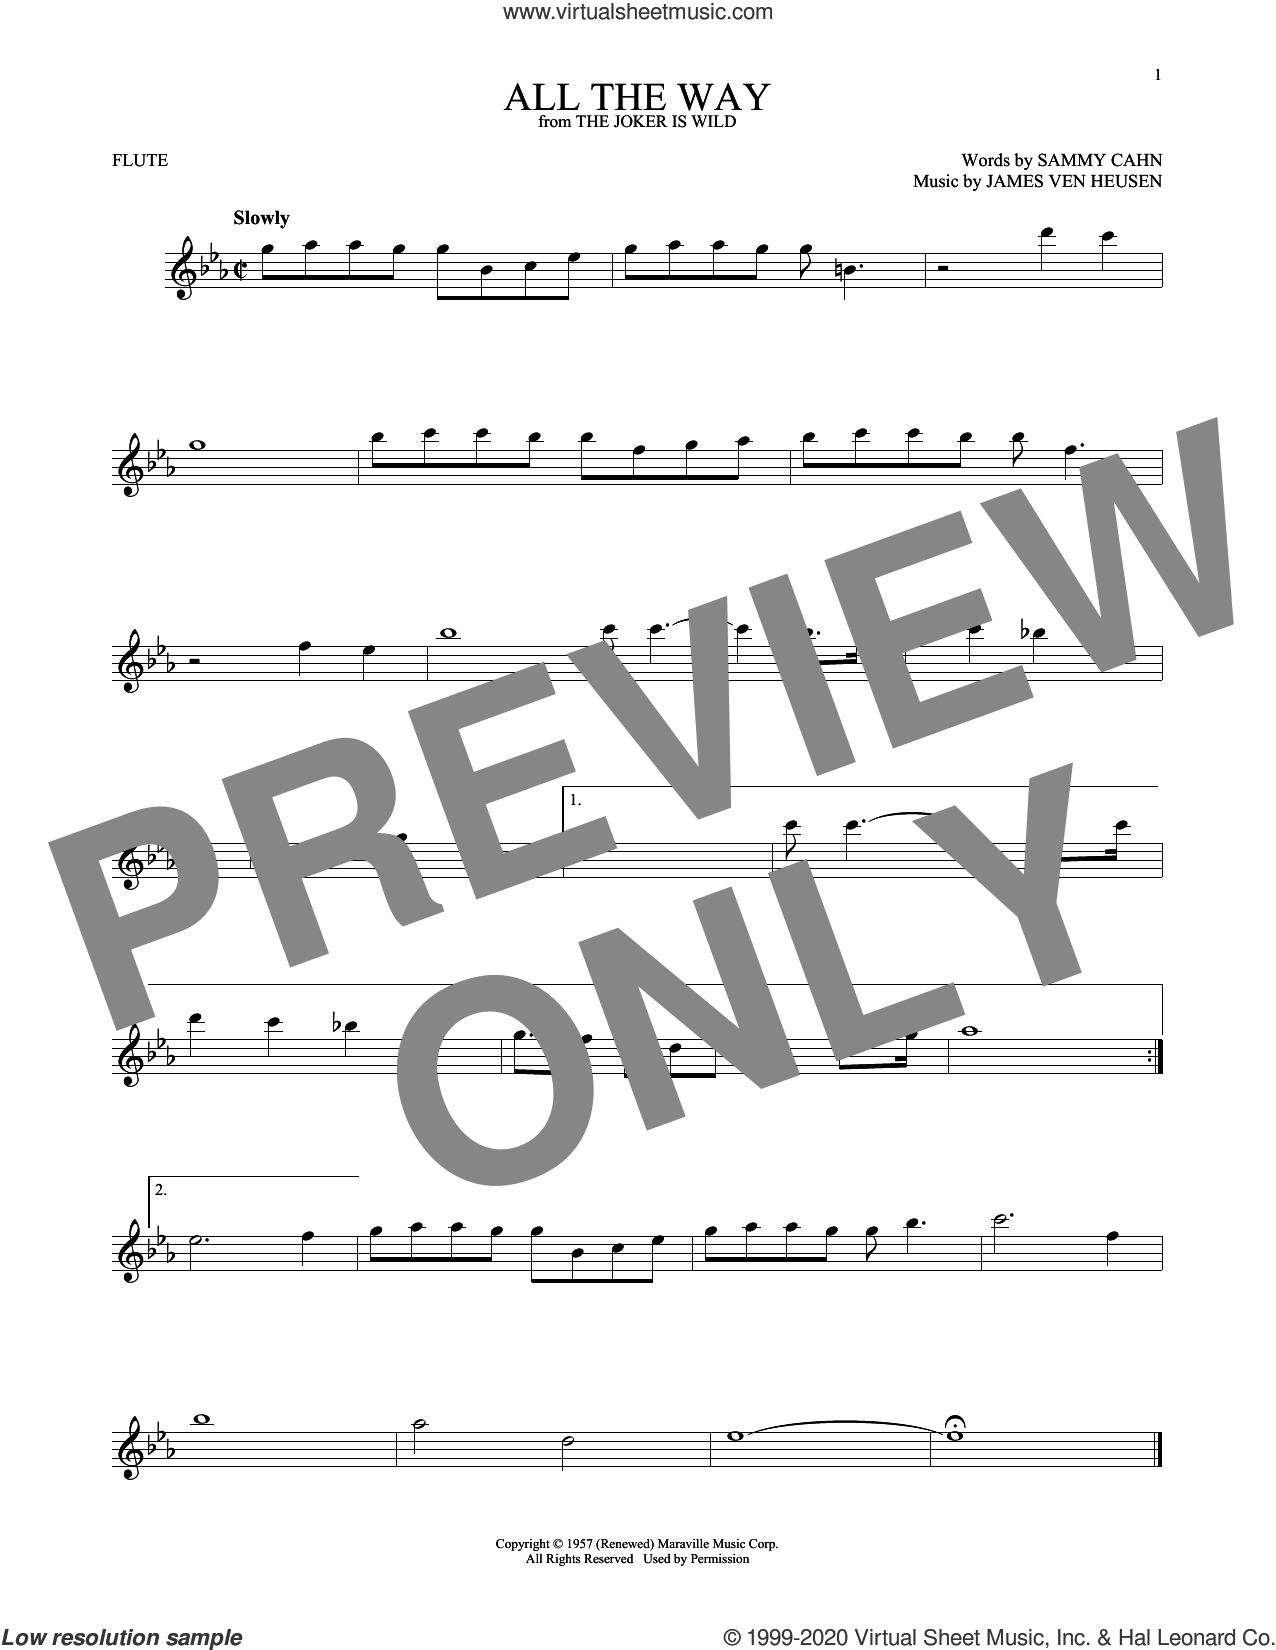 All The Way sheet music for flute solo by Frank Sinatra, Kenny G, Jimmy van Heusen and Sammy Cahn, intermediate skill level